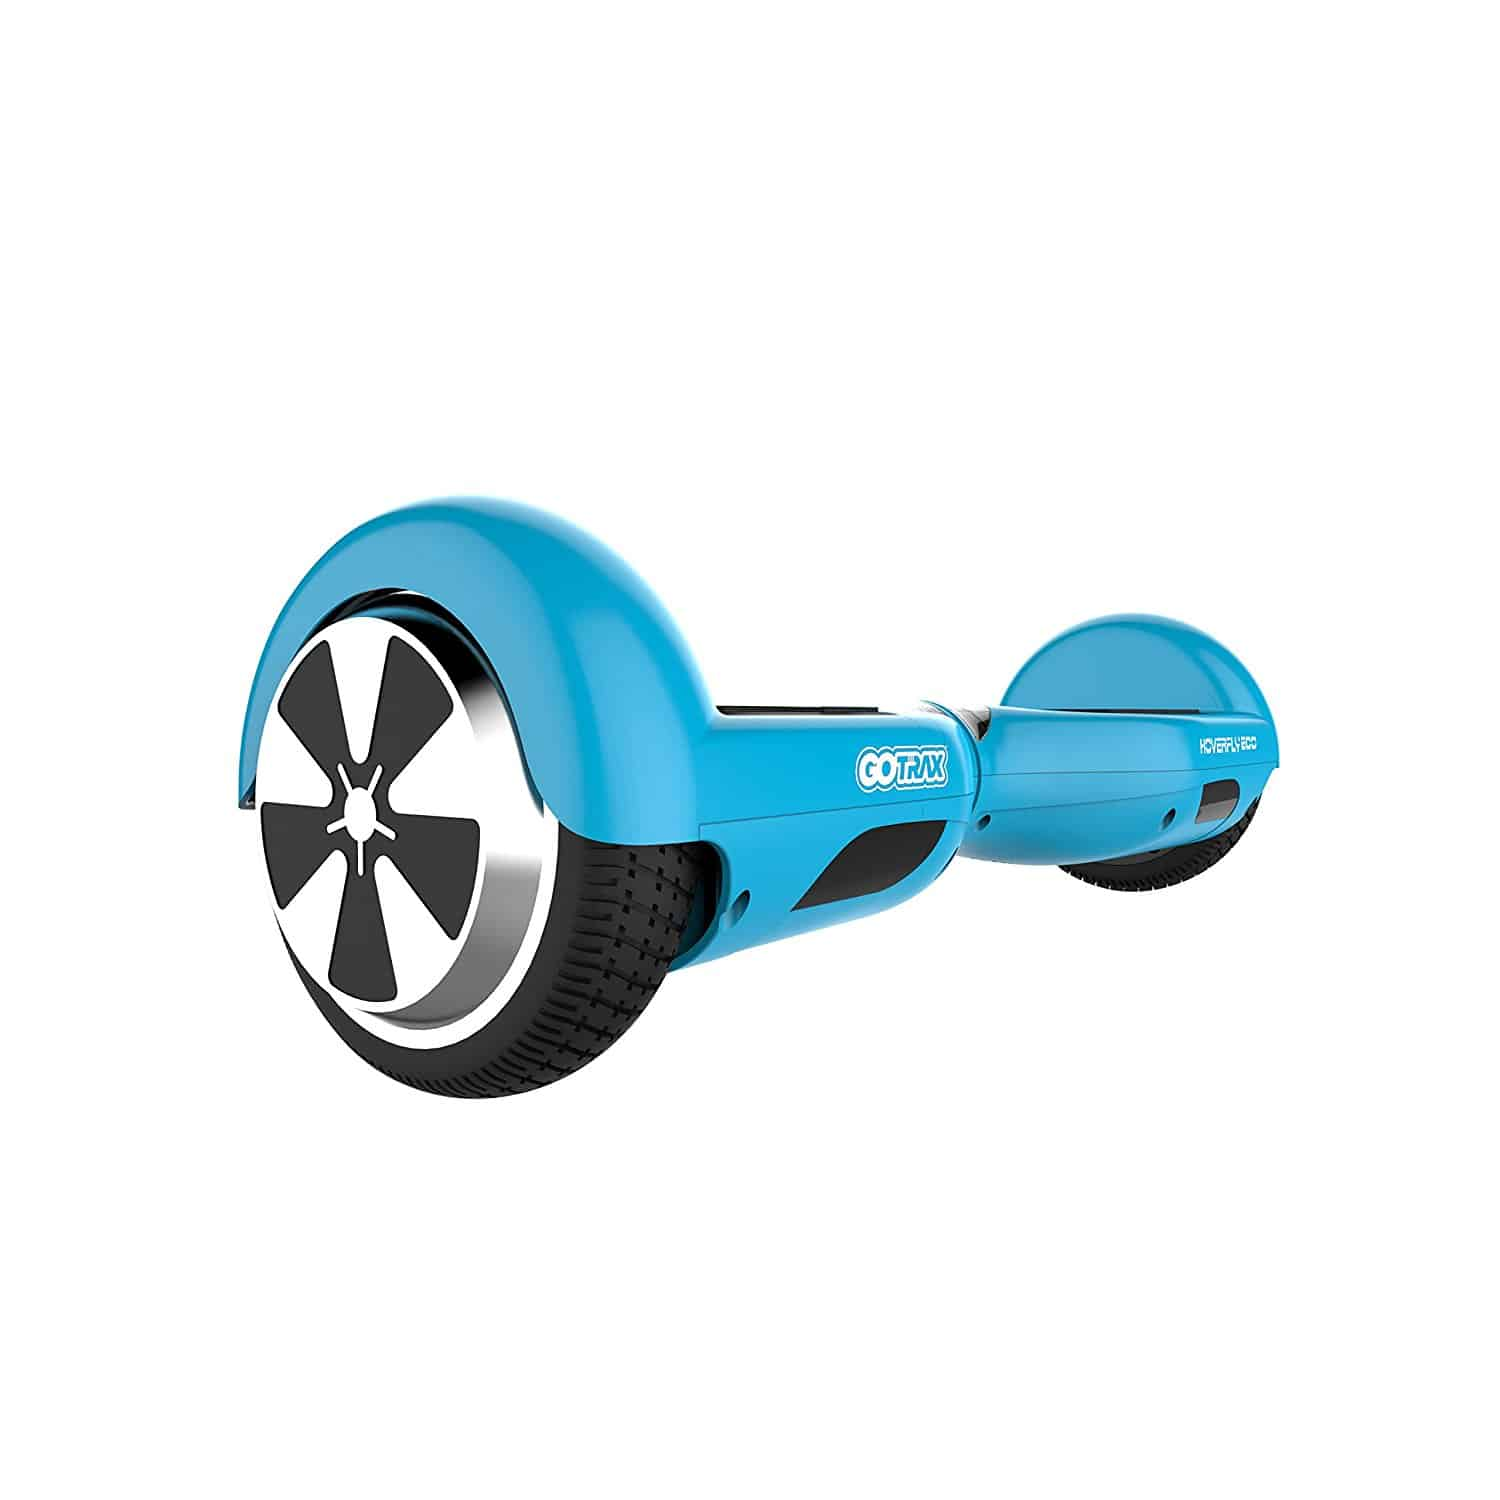 Best Hoverboard under 0 - GoTrax Hoverfly Eco